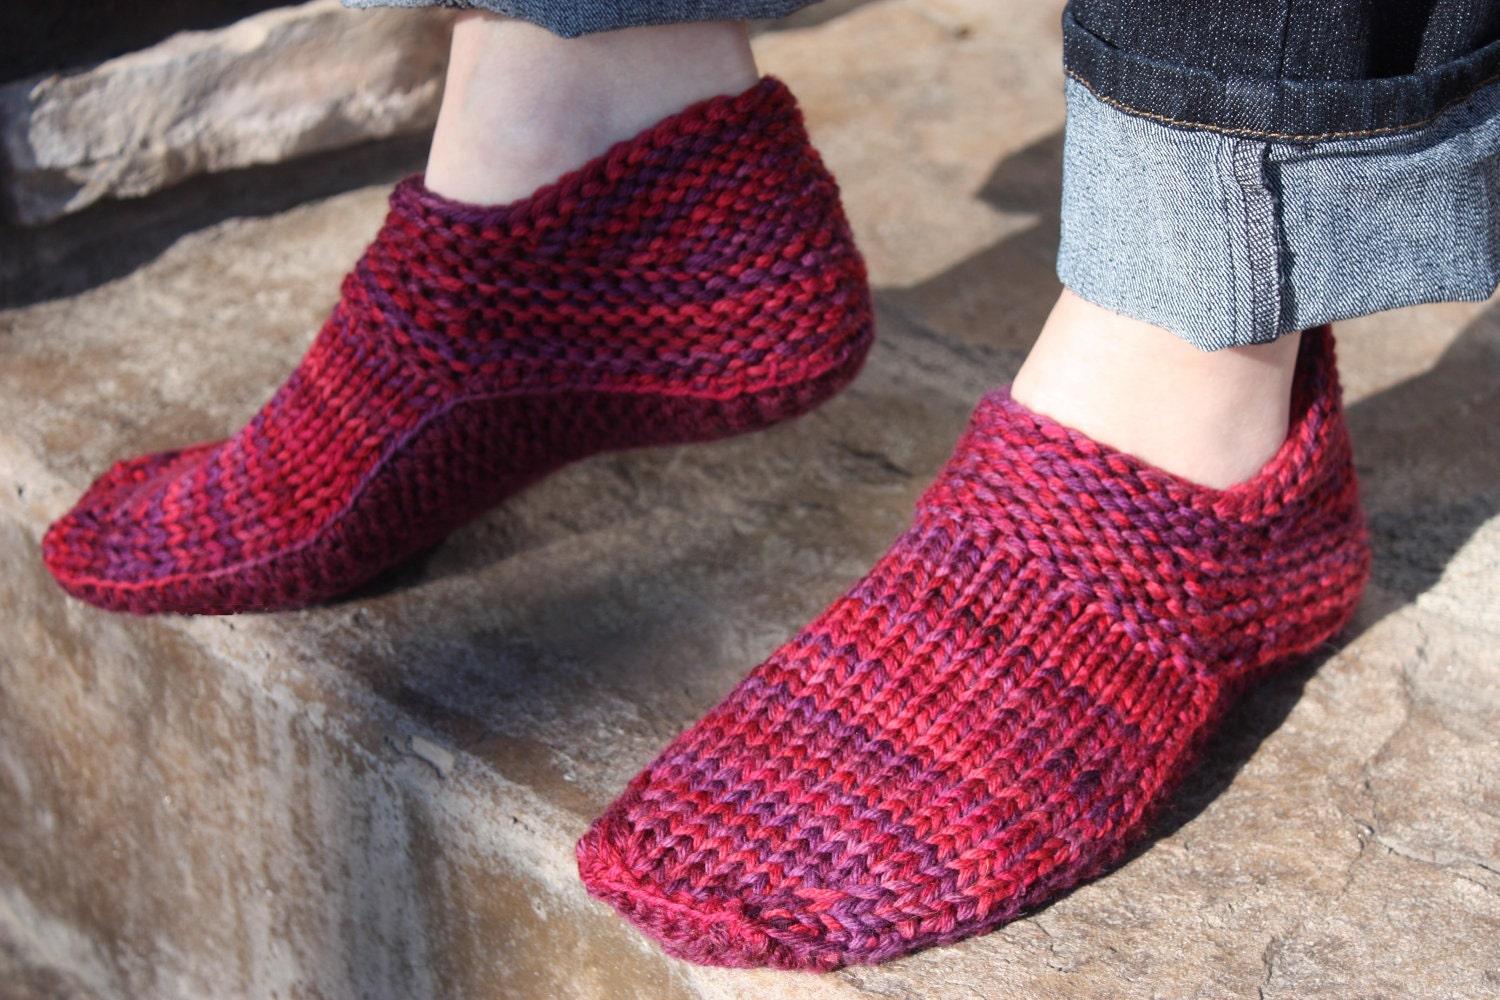 Patterns For Knitting Slippers : Options Slippers PATTERN Knit knit w/crochet plus Felting